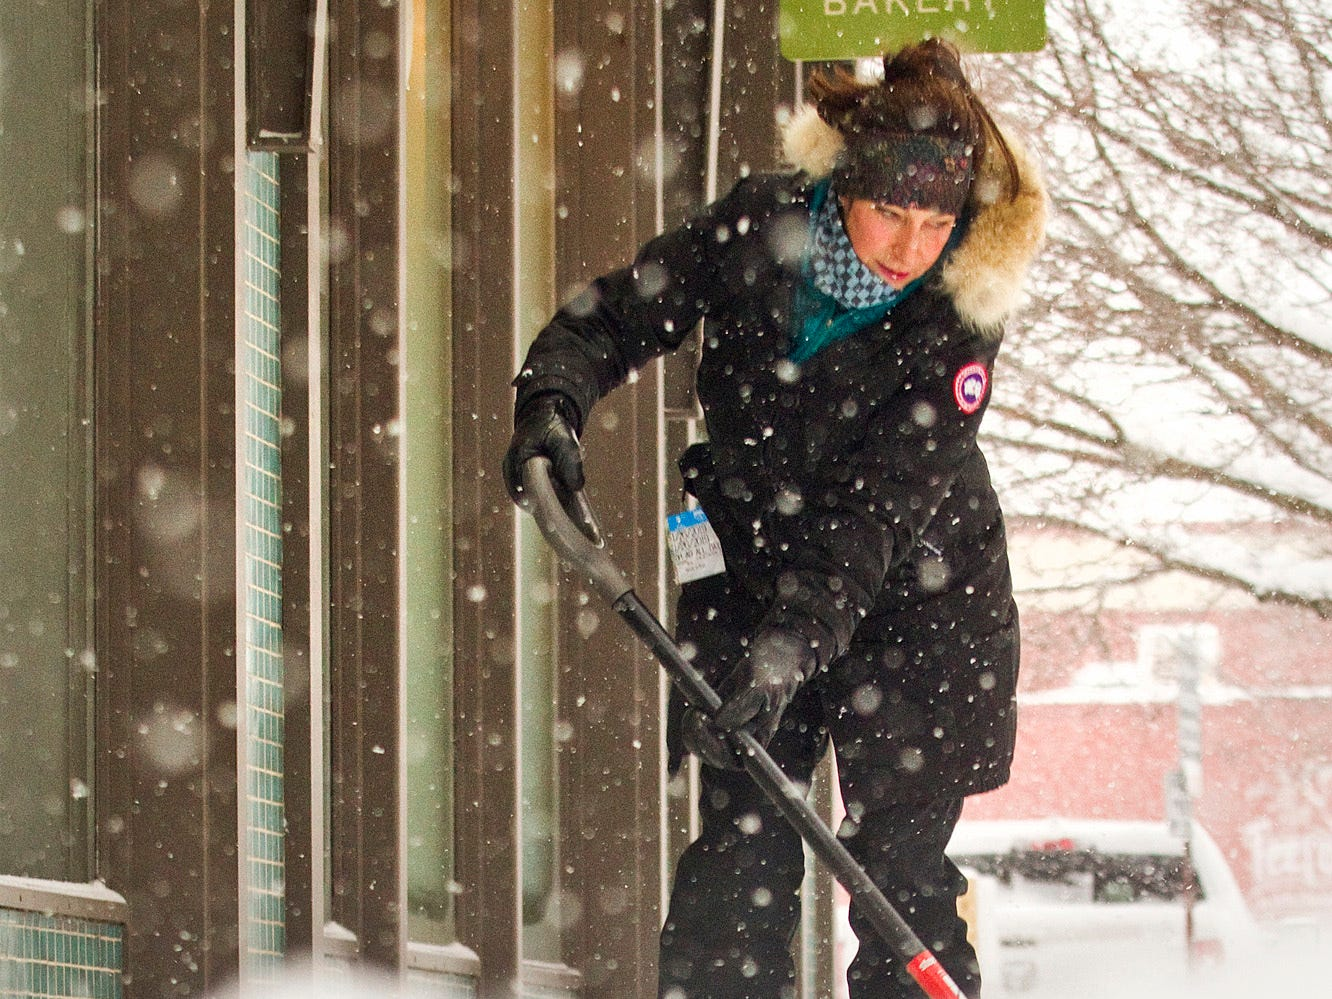 """Kara McConnell shovels snow outside of Good Harbor Coffee and Bakery on Monday morning in Traverse City. McConnell, a teacher at Eastern Elementary School, volunteered to shovel since she had free time on the snow day. """"Just getting a coffee and trying to be helpful,"""" she said."""